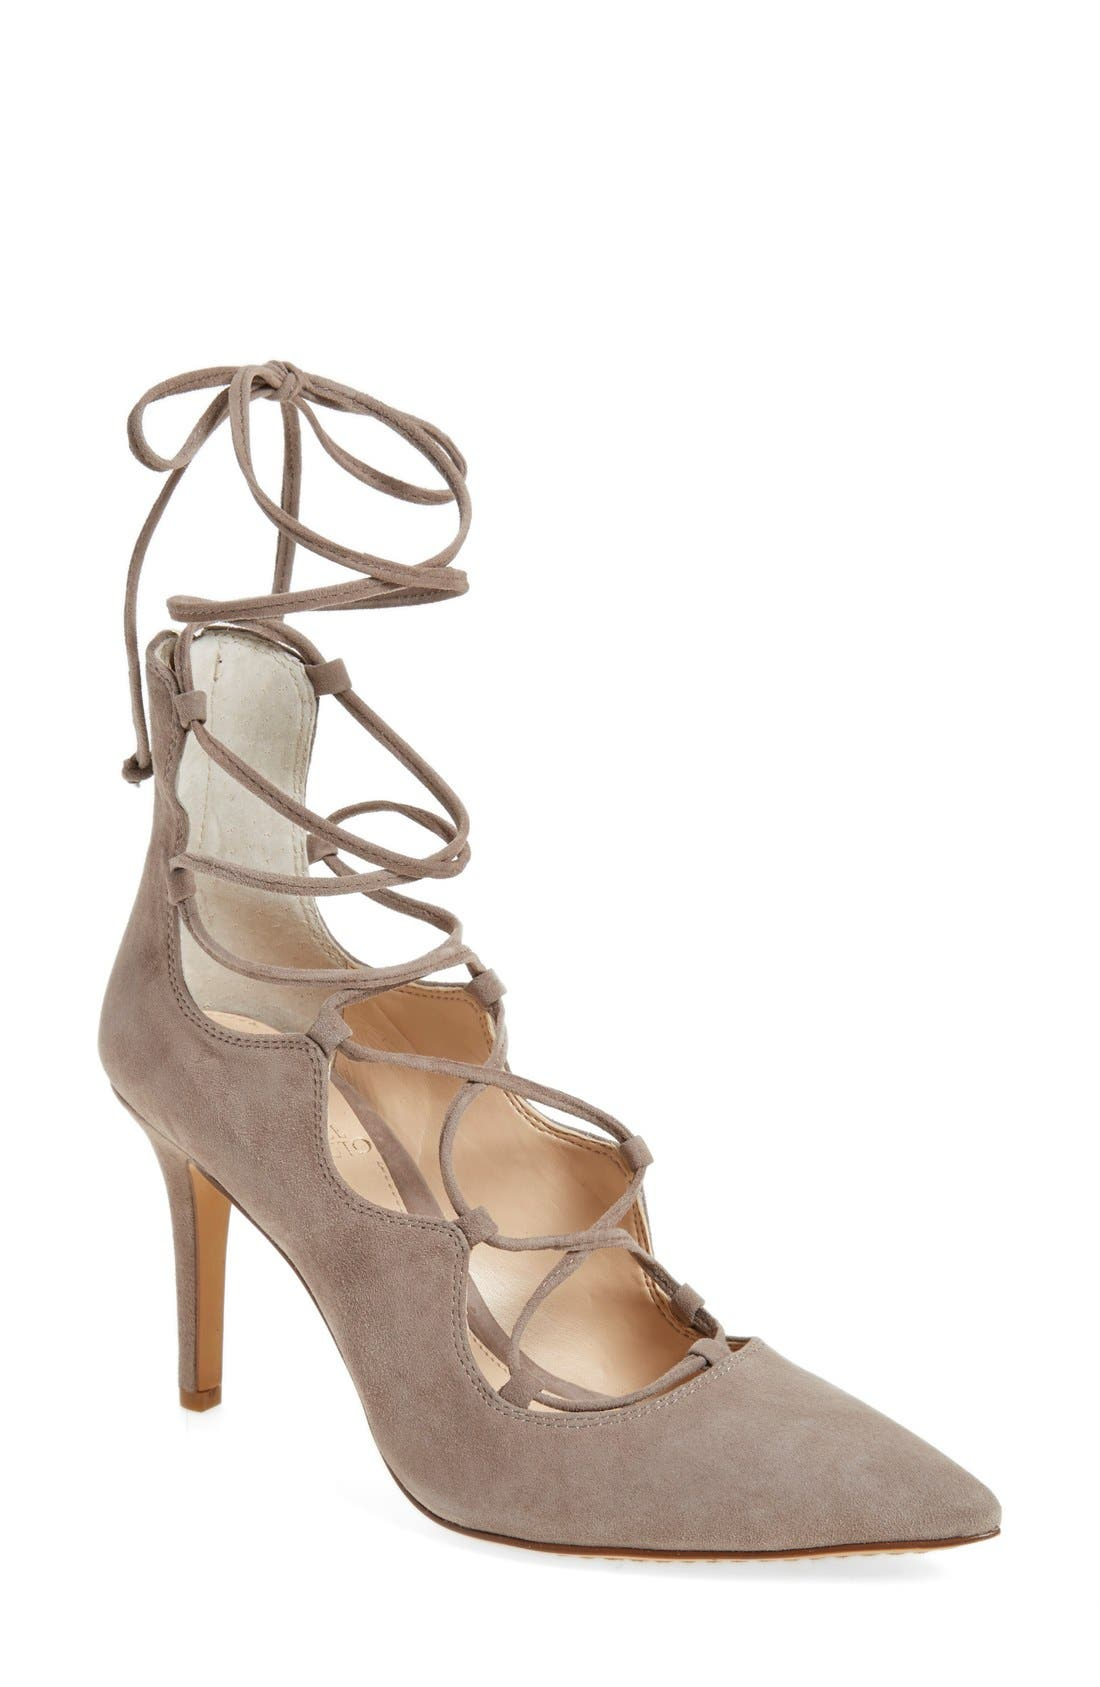 Main Image - Vince Camuto 'Barsha' Lace-up Pump (Women) (Nordstrom Exclusive)